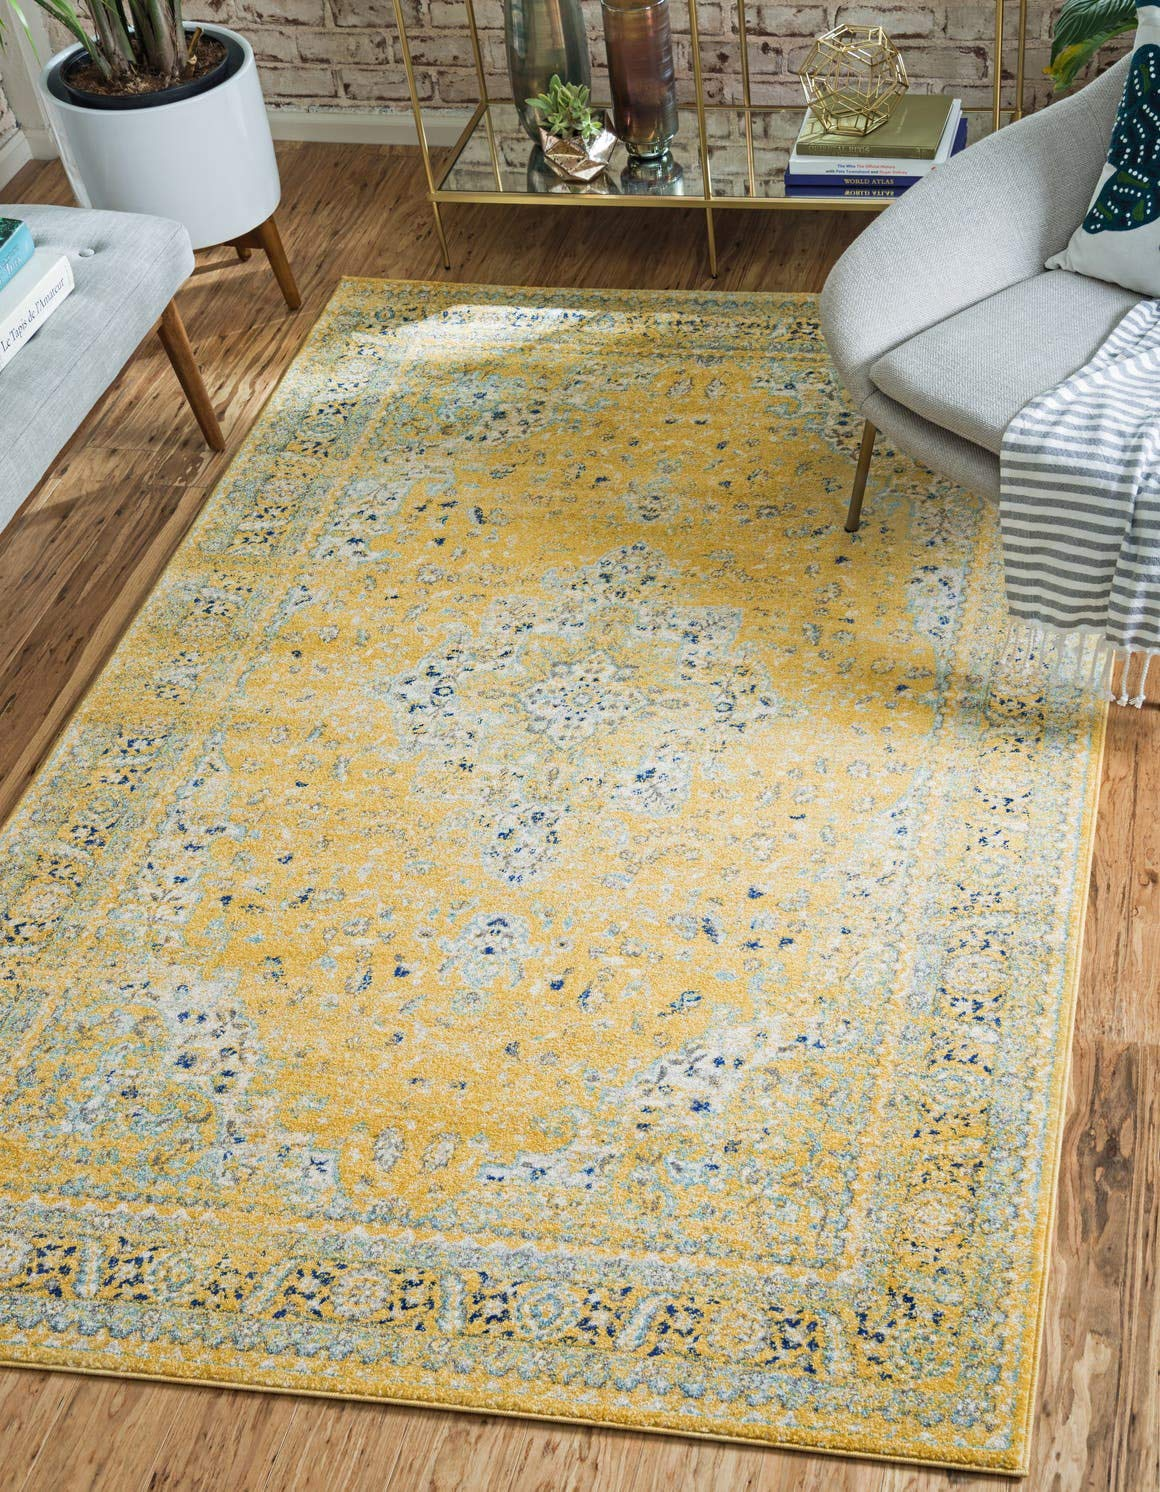 Unique Loom Tradition Collection Classic Southwestern Yellow Area Rug 4 0 x 6 0